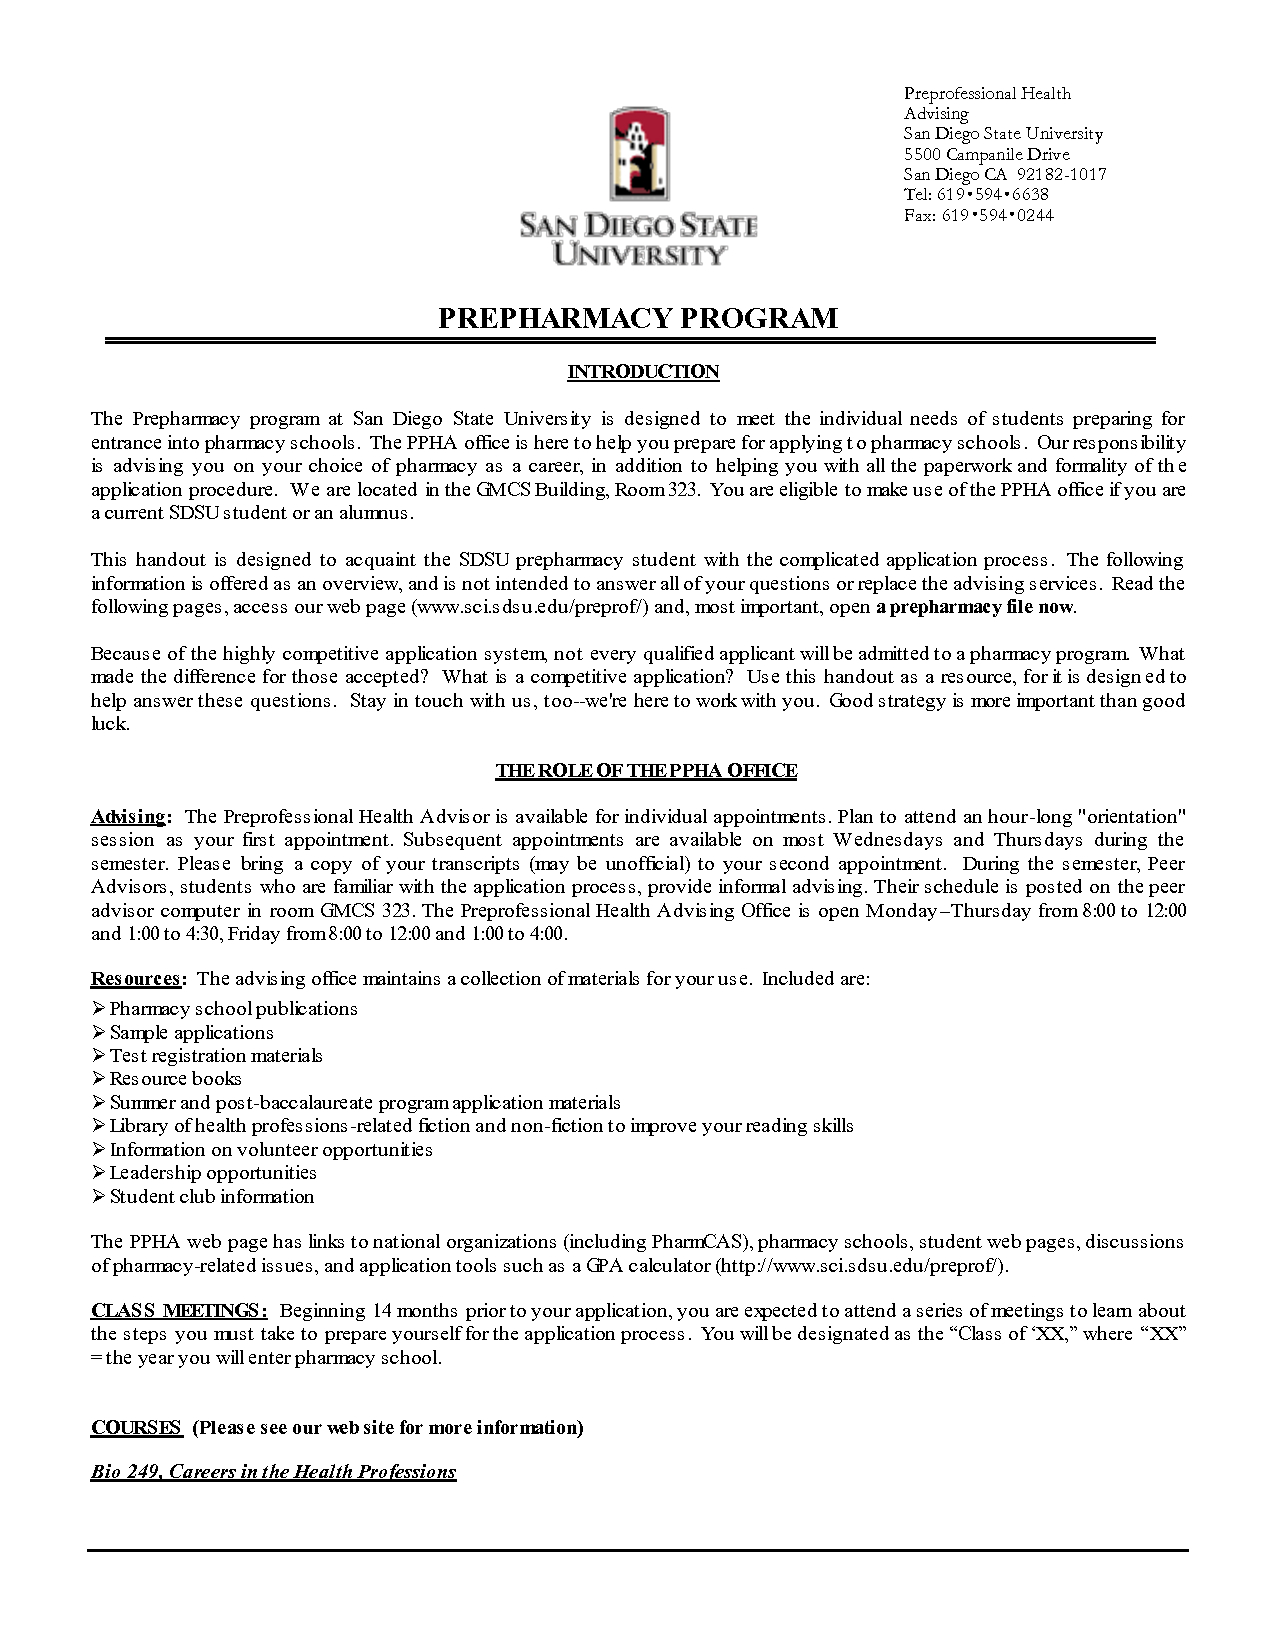 Personal Cover Letter Template - Pharmacy School Essay Pharmacy School Essay Ideas for Othello